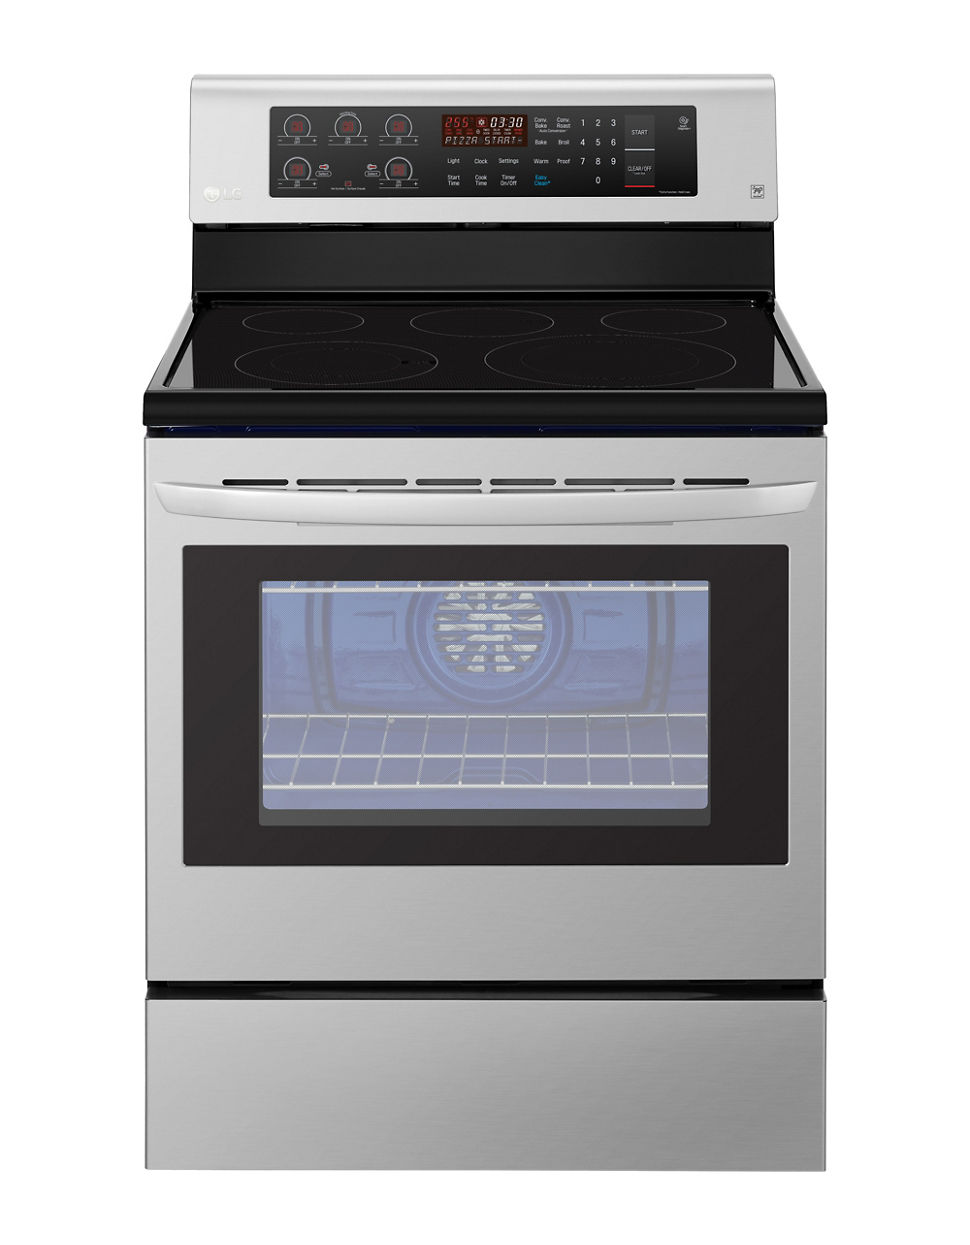 Kitchen small appliances victoria bc - Lre3193st 30 Inch 6 3 Cu Ft Freestanding Smooth Top Electric Range Stainless